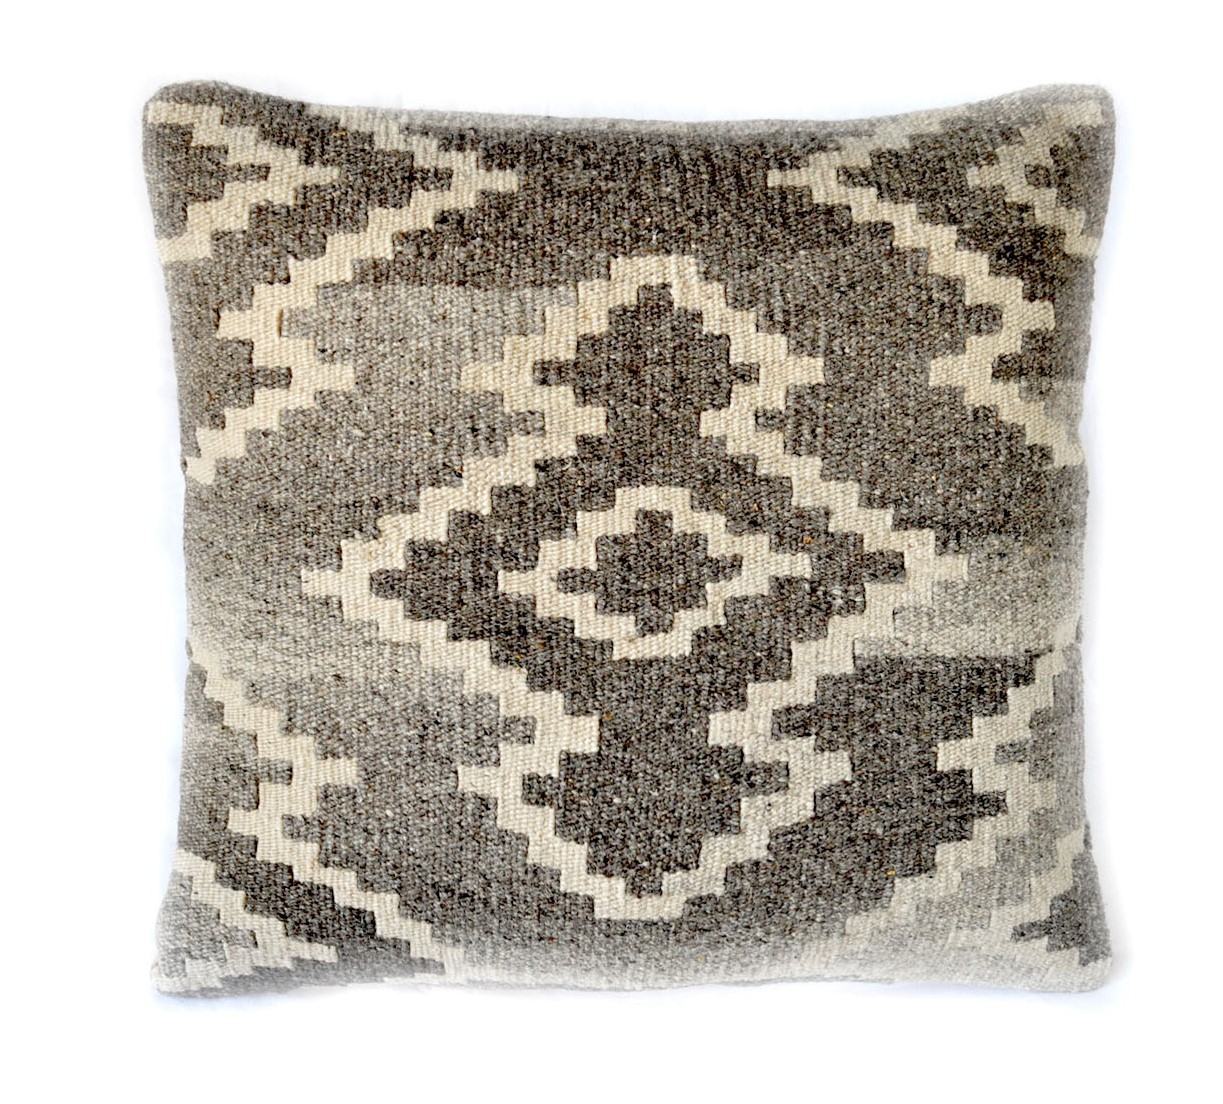 18×18 Hand-woven Wool Kilim Pillow Cover 12980988